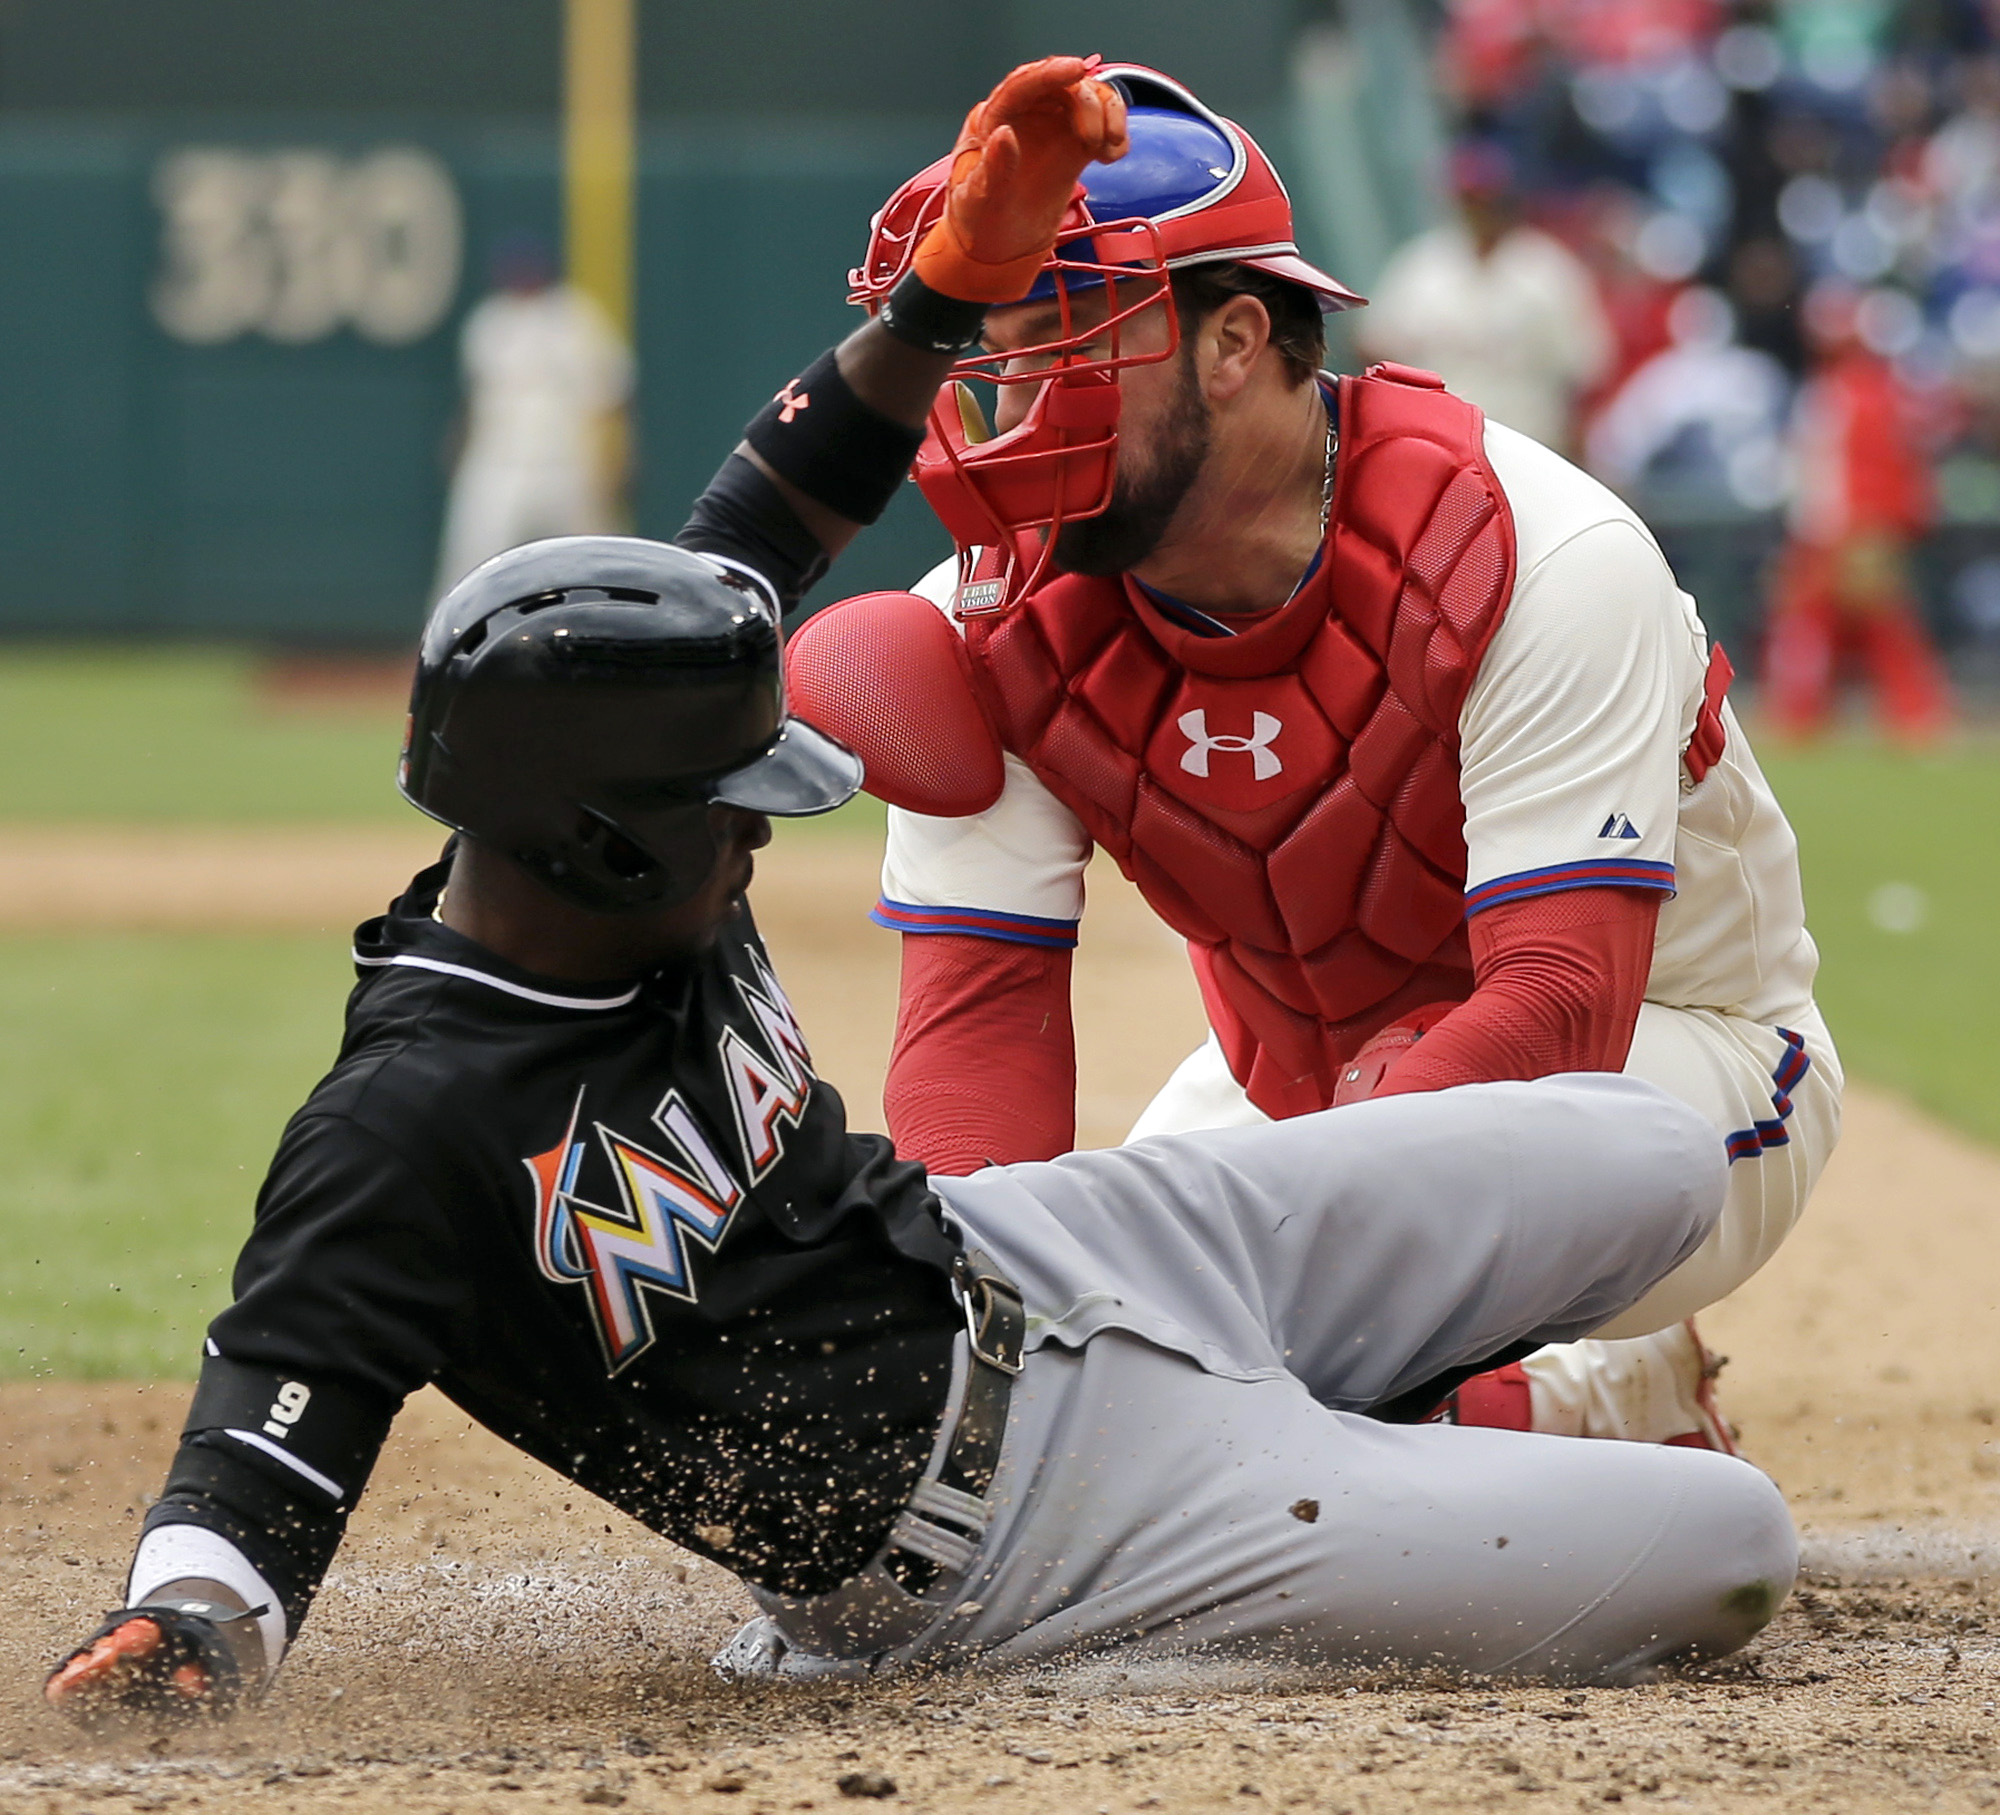 Miami Marlins' Dee Gordon, left, scores past the tag from Philadelphia Phillies catcher Cameron Rupp on a two-run double by Martin Prado during the sixth inning of a baseball game, Thursday, April 23, 2015, in Philadelphia. (AP Photo/Matt Slocum)